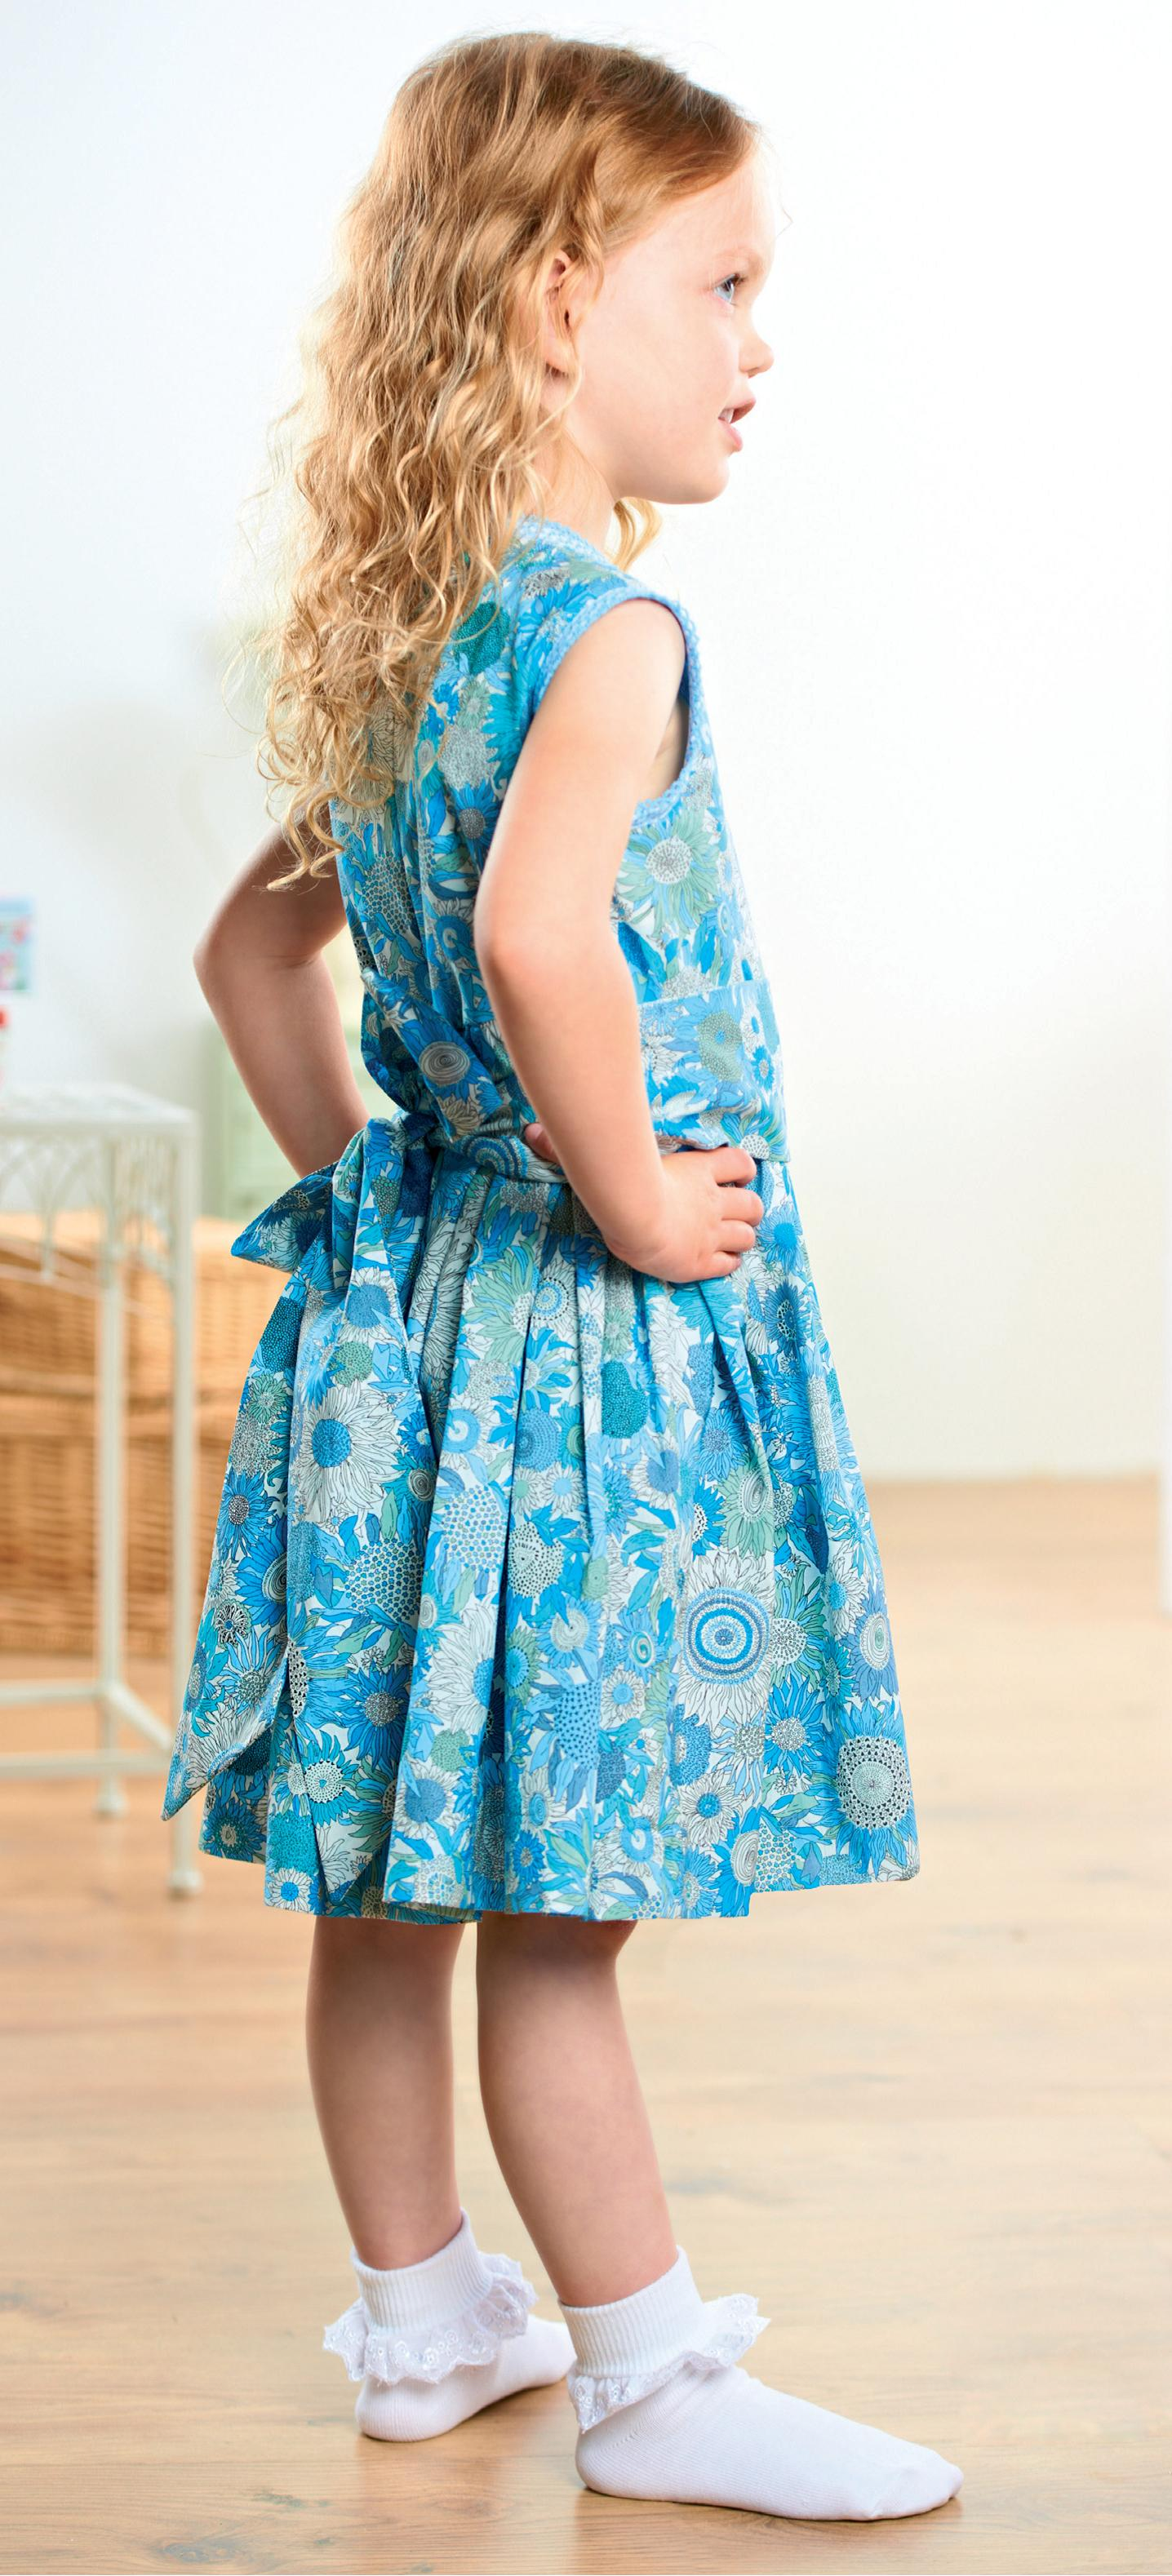 Young Girls Liberty Party Dresses Free Sewing Patterns